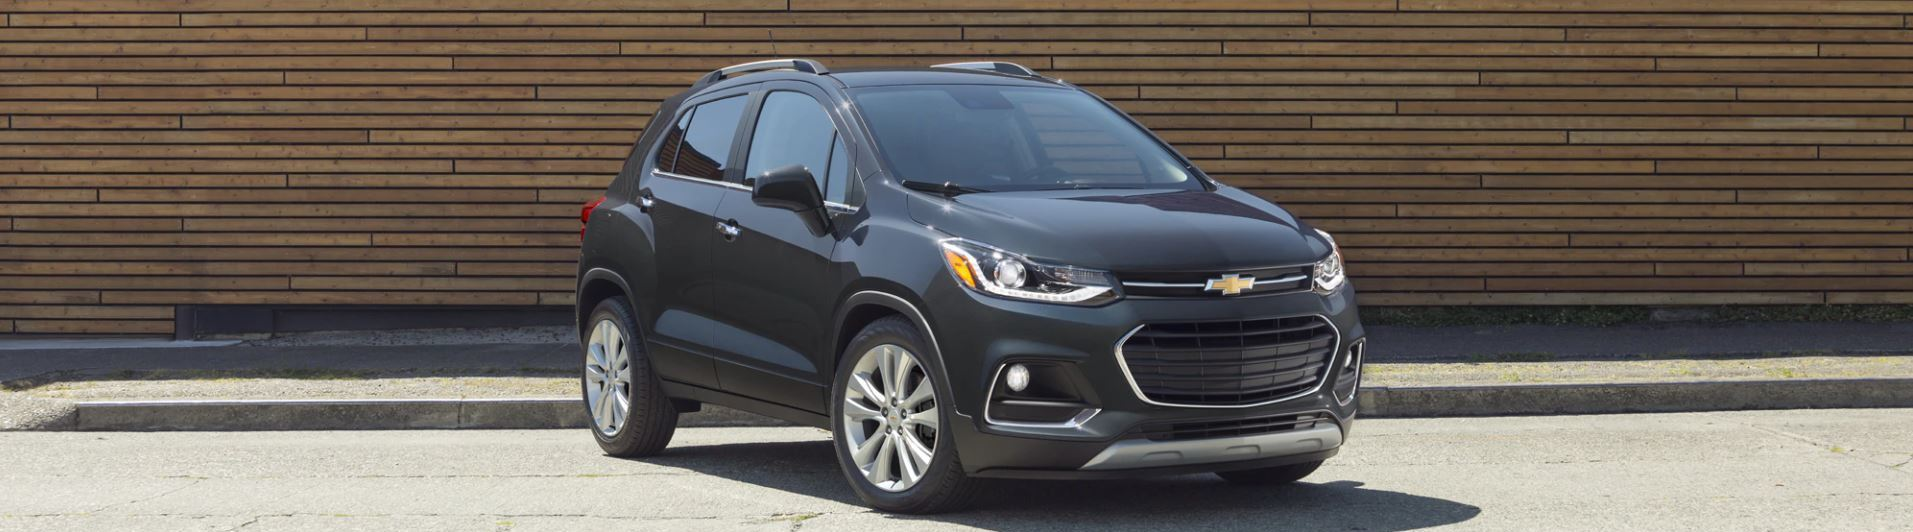 2020 Chevrolet Trax Key Features near Naperville, IL